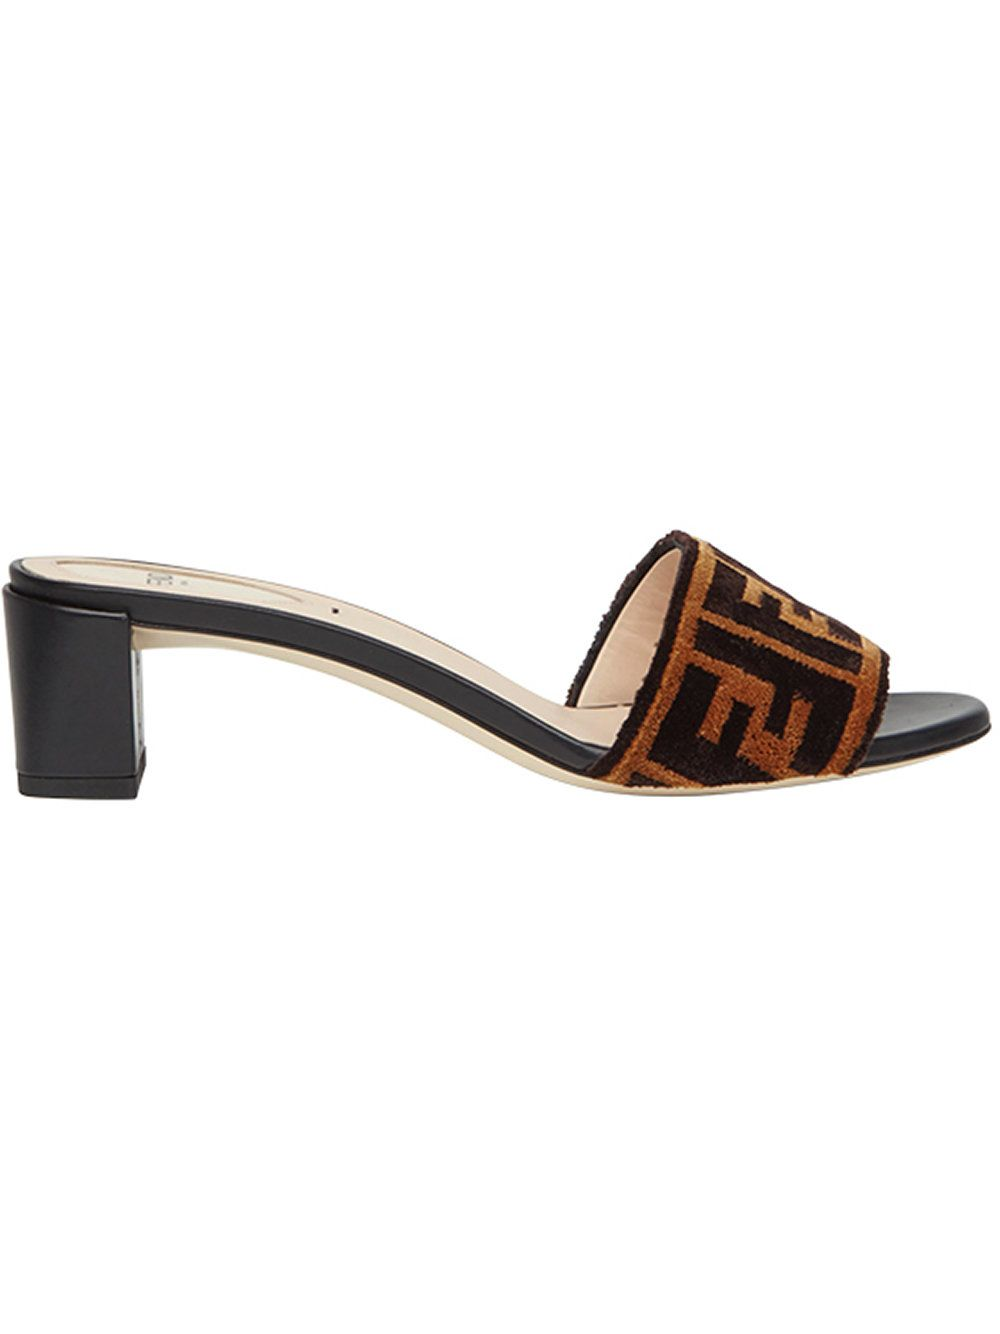 24cbe156 Fendi Sabots fabric sandals | SHOES in 2019 | Fendi, Shoes, Sandals